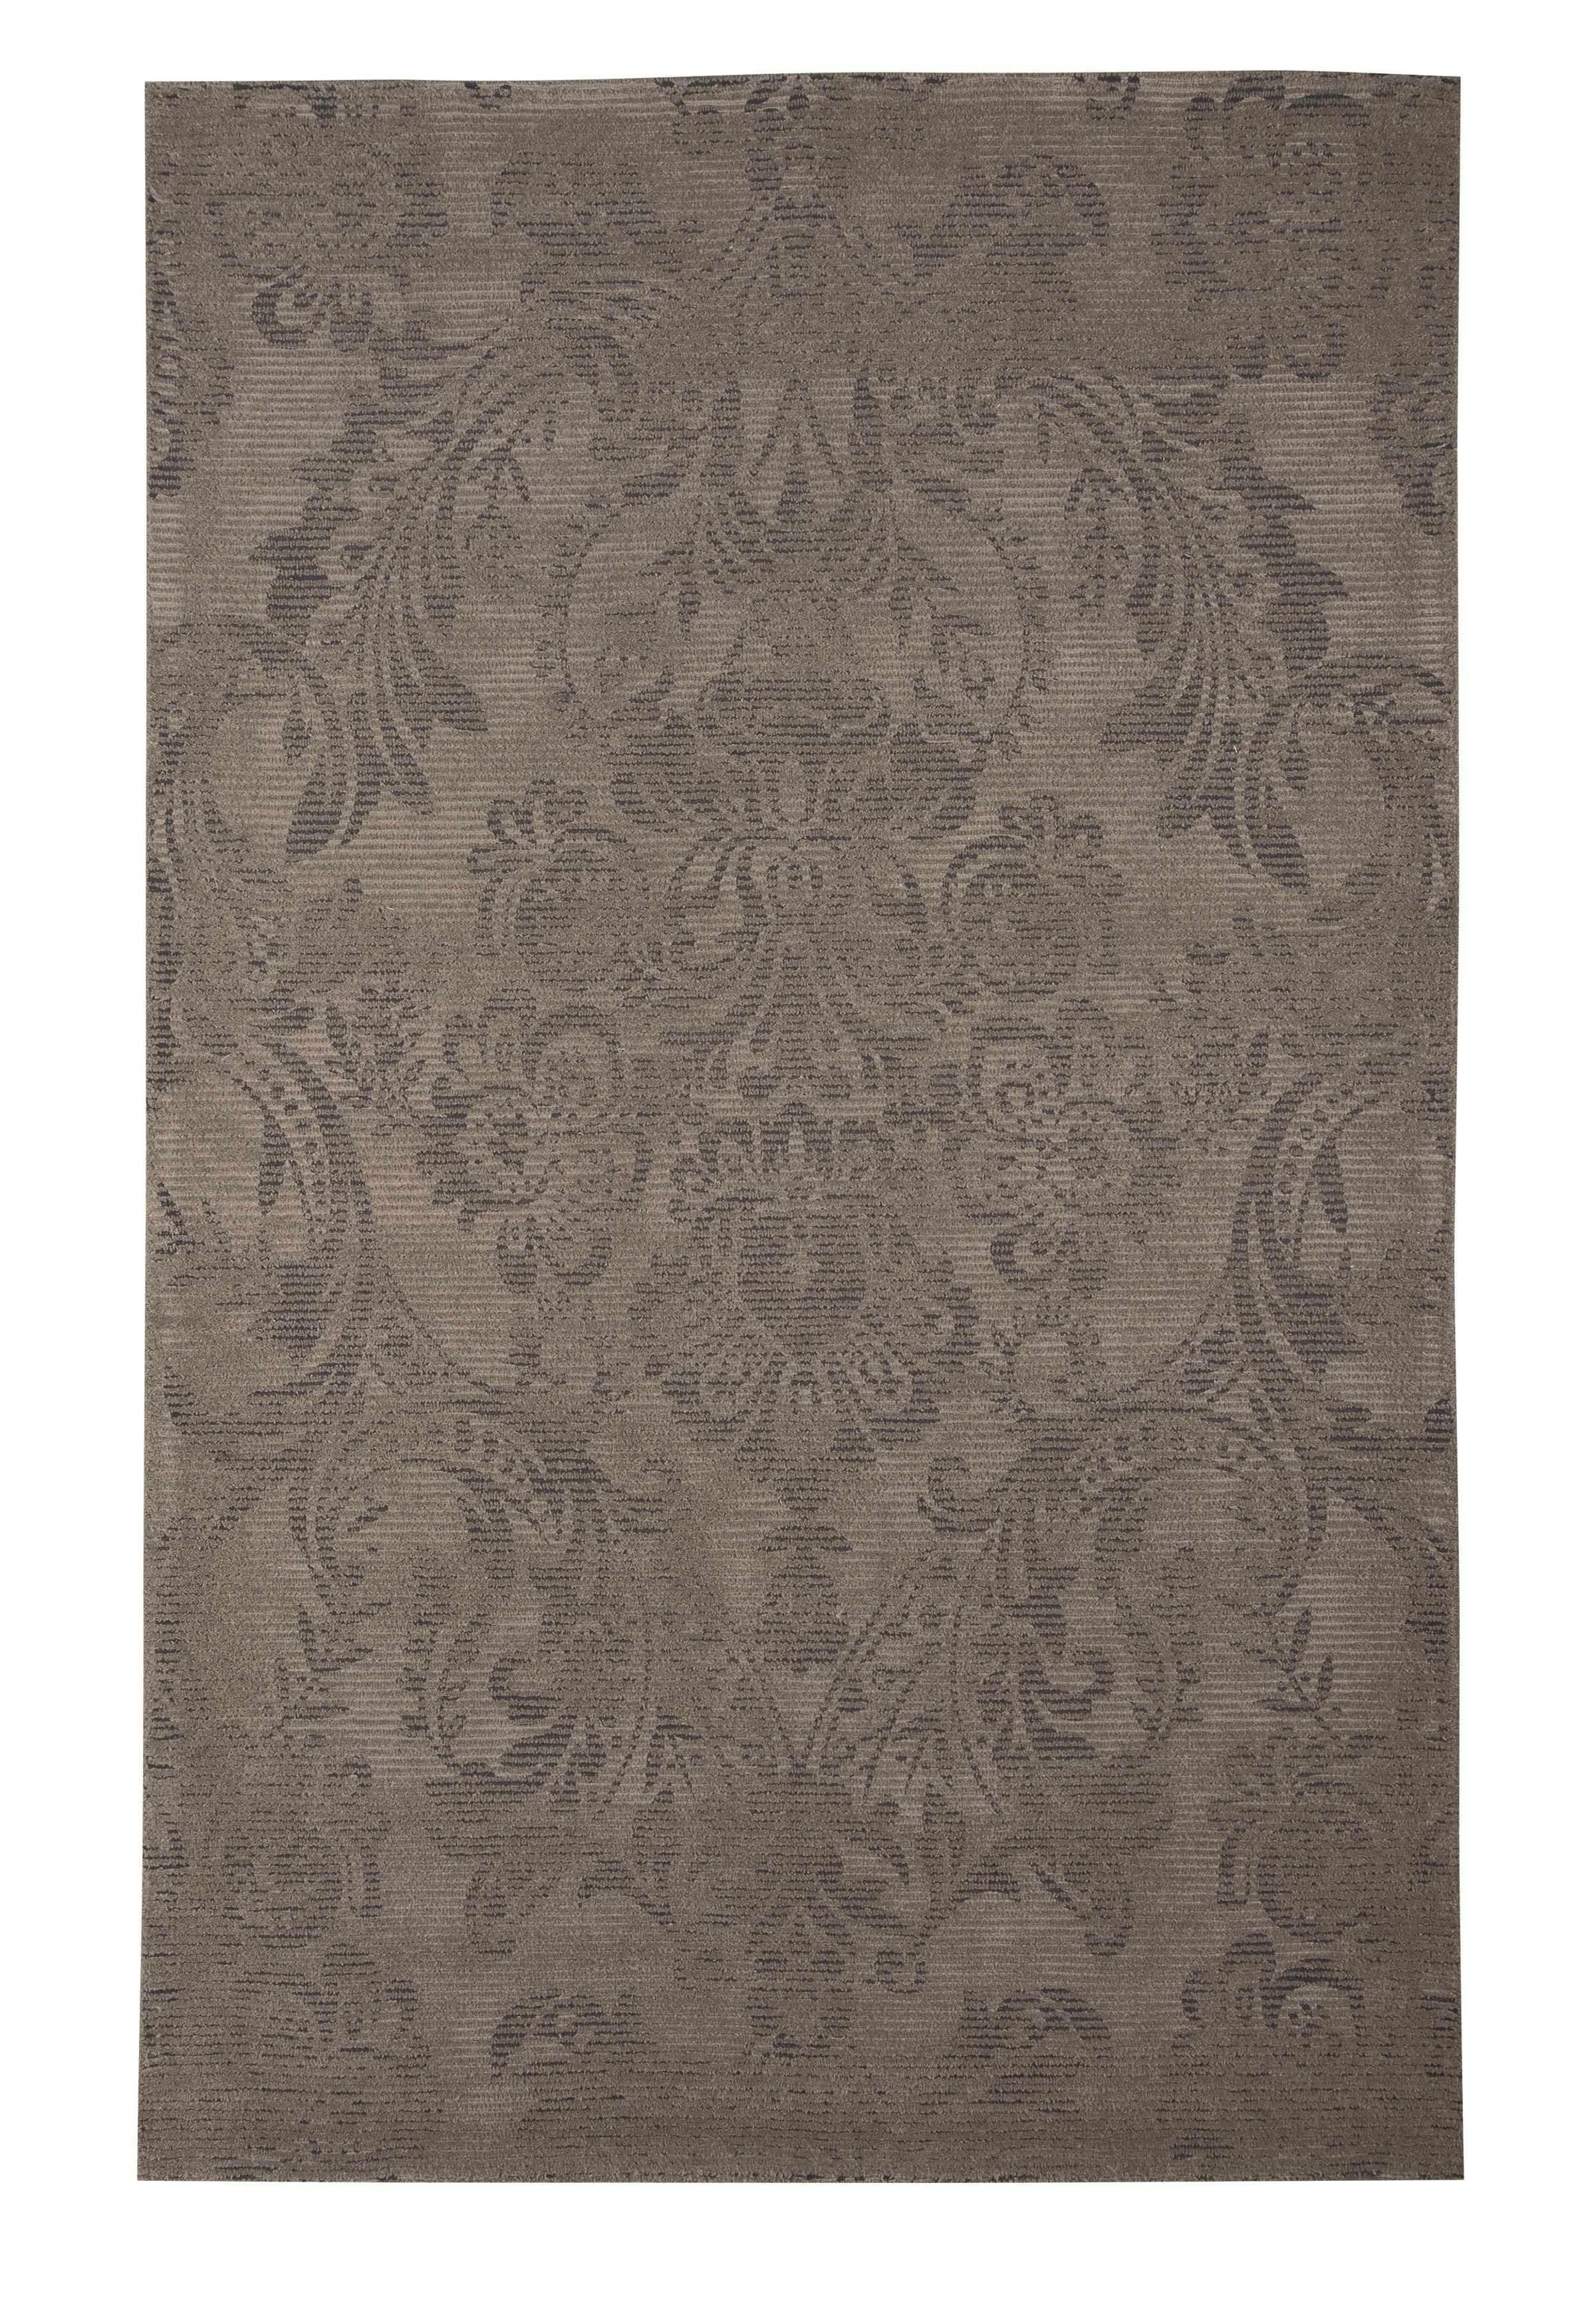 Signature Design by Ashley Contemporary Area Rugs Burks Brown Medium Rug - Item Number: R400212